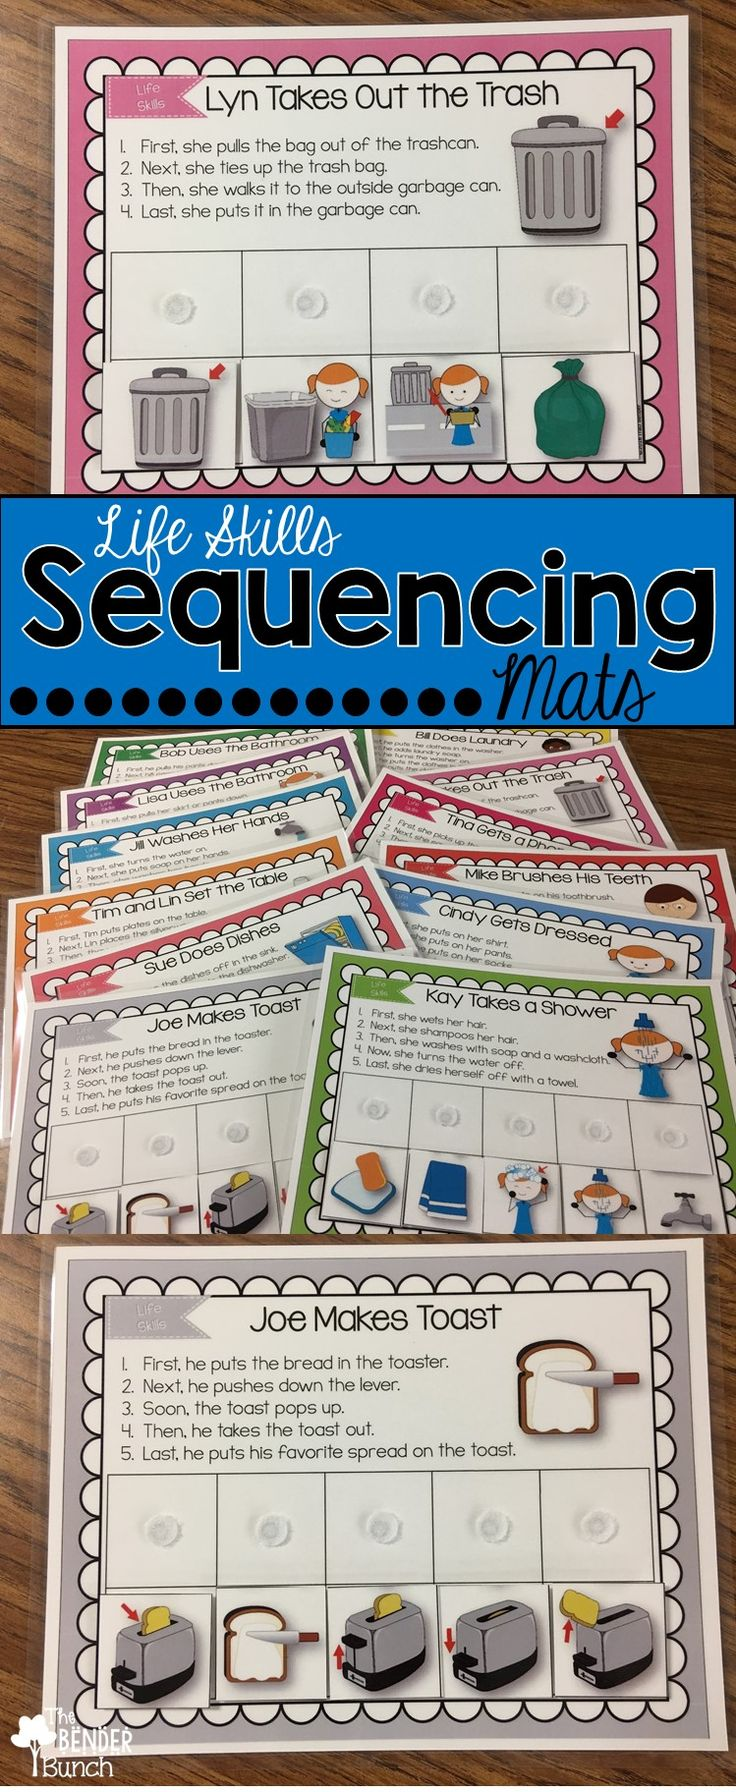 Teach life skills, sequencing, transitional words, following directions, language skills, and listening skills All-in-One with these Life Skills Sequencing Mats!